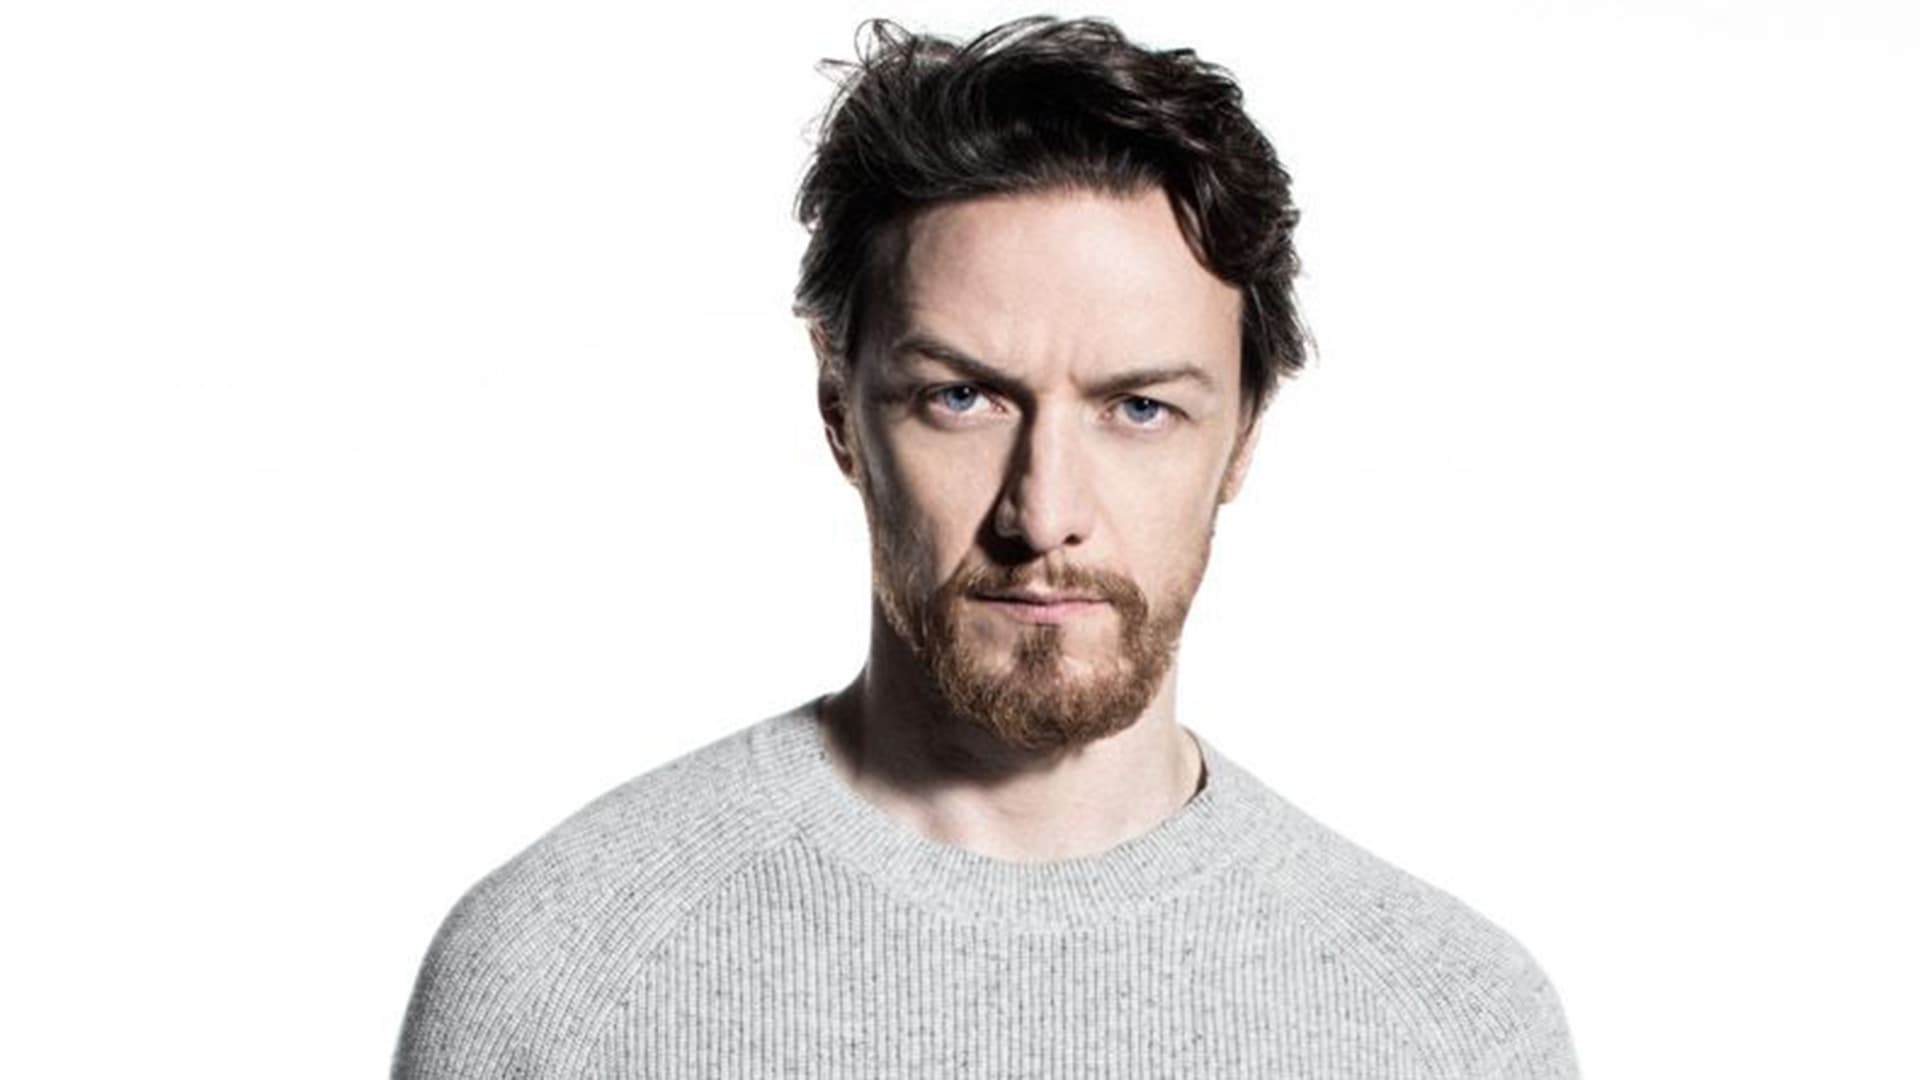 14 james mcavoy wallpapers hd high quality download